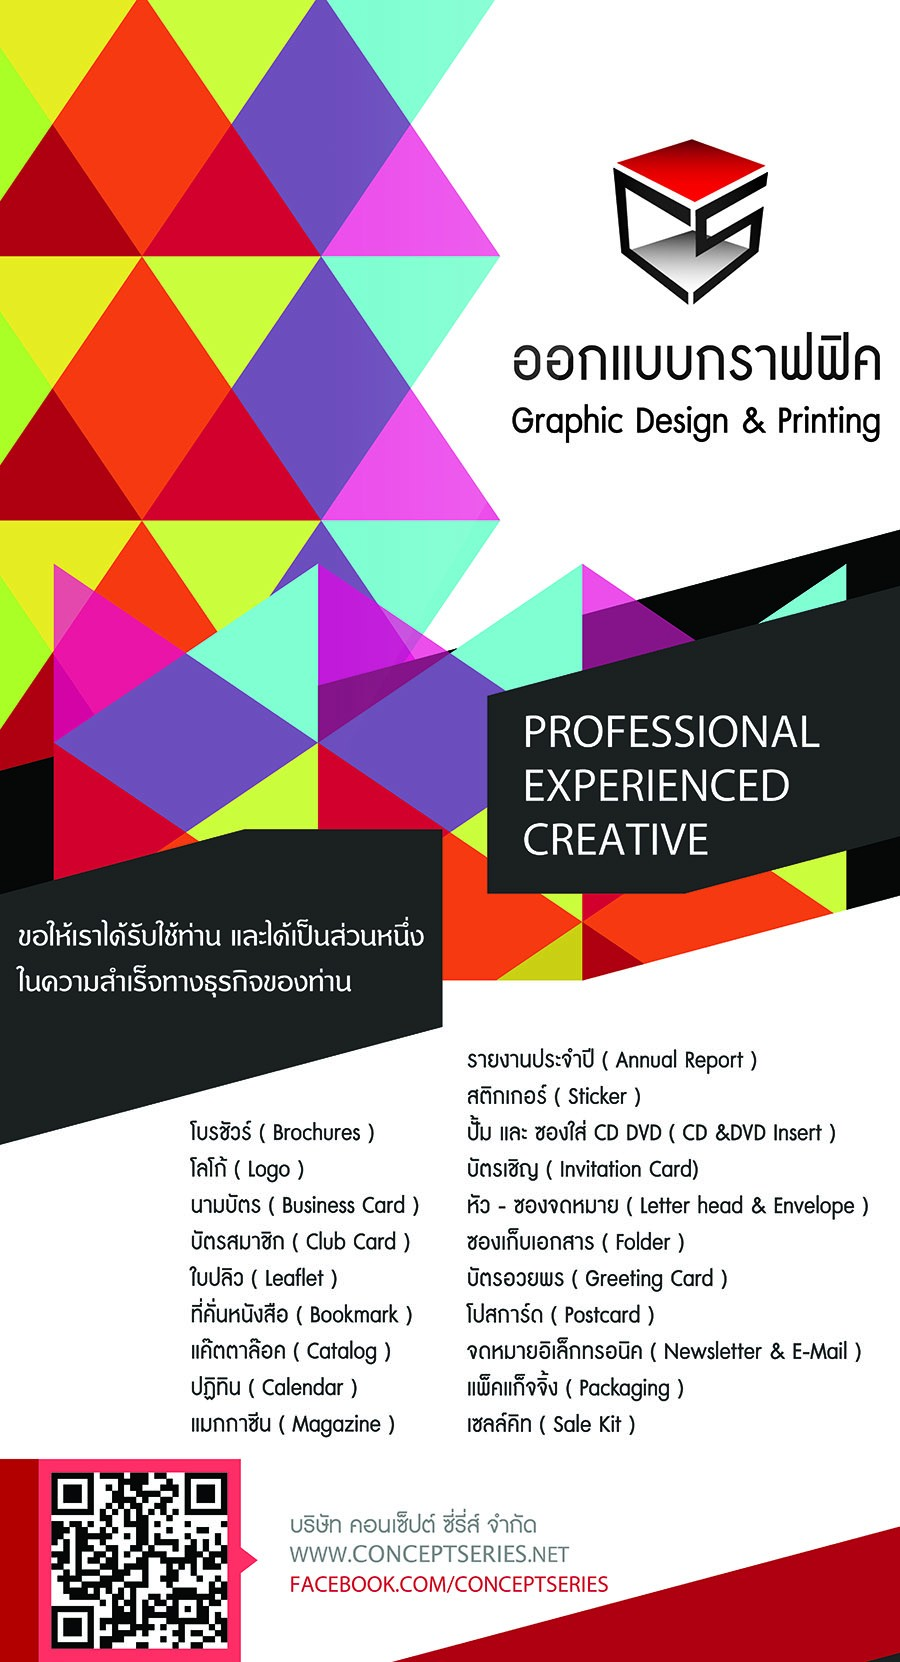 รับออกแบบ Logo Design, Icon Design, Corporate Identity, Character Design, Brochure, Catalog และ Annual Report เริ่มต้นเพียง 3,900 บาท